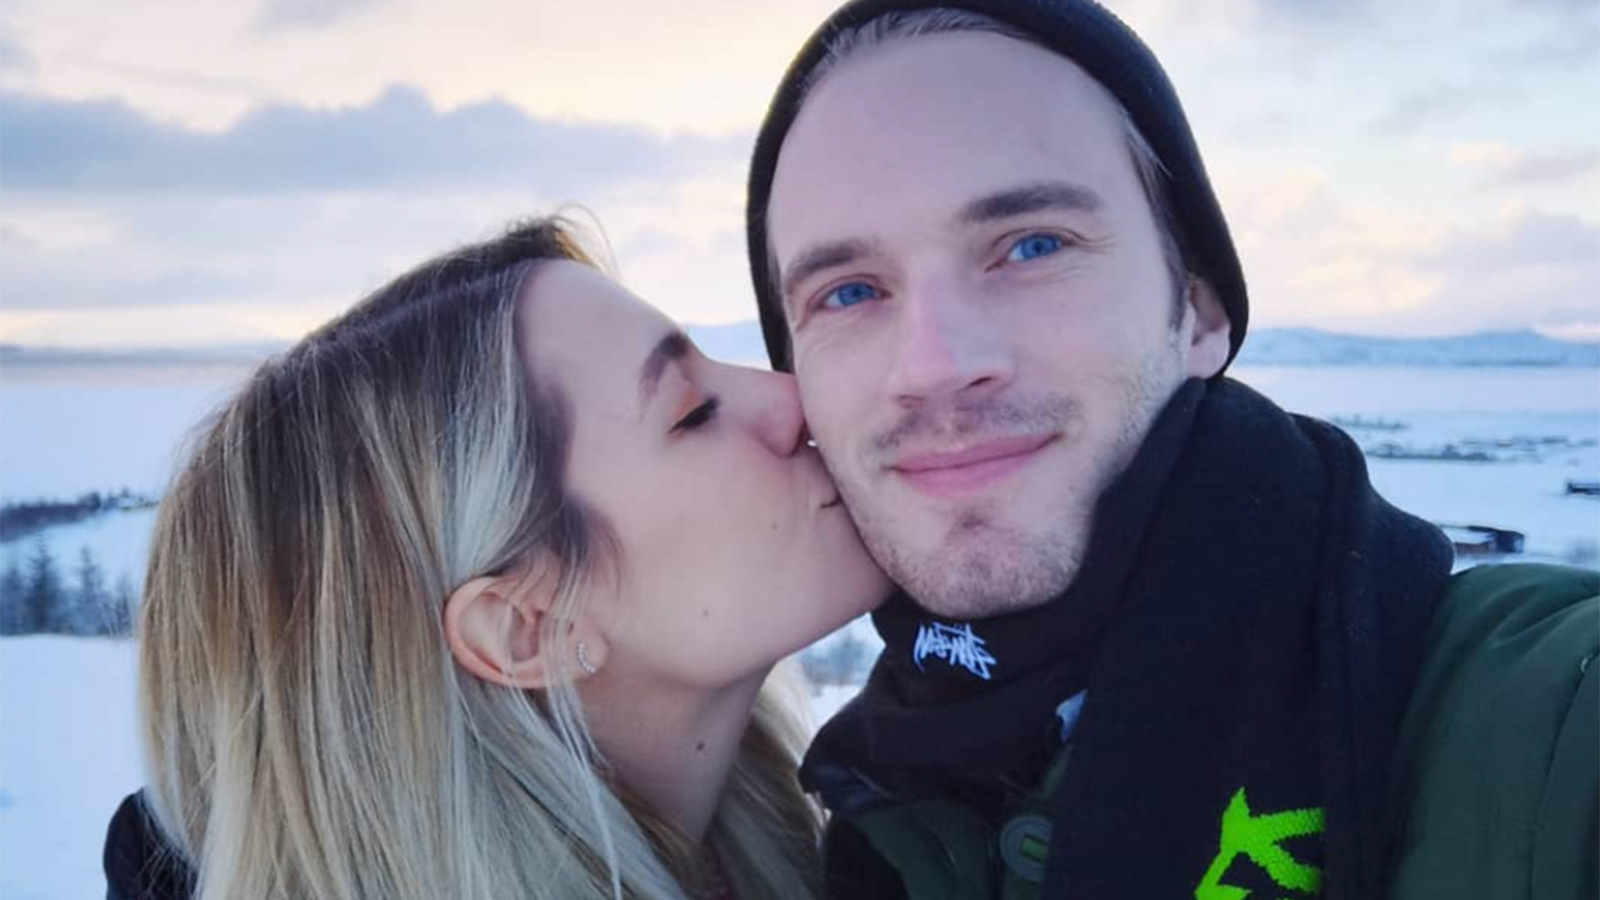 Instagram upload of YouTuber PewDiePie and his wife Marzia.